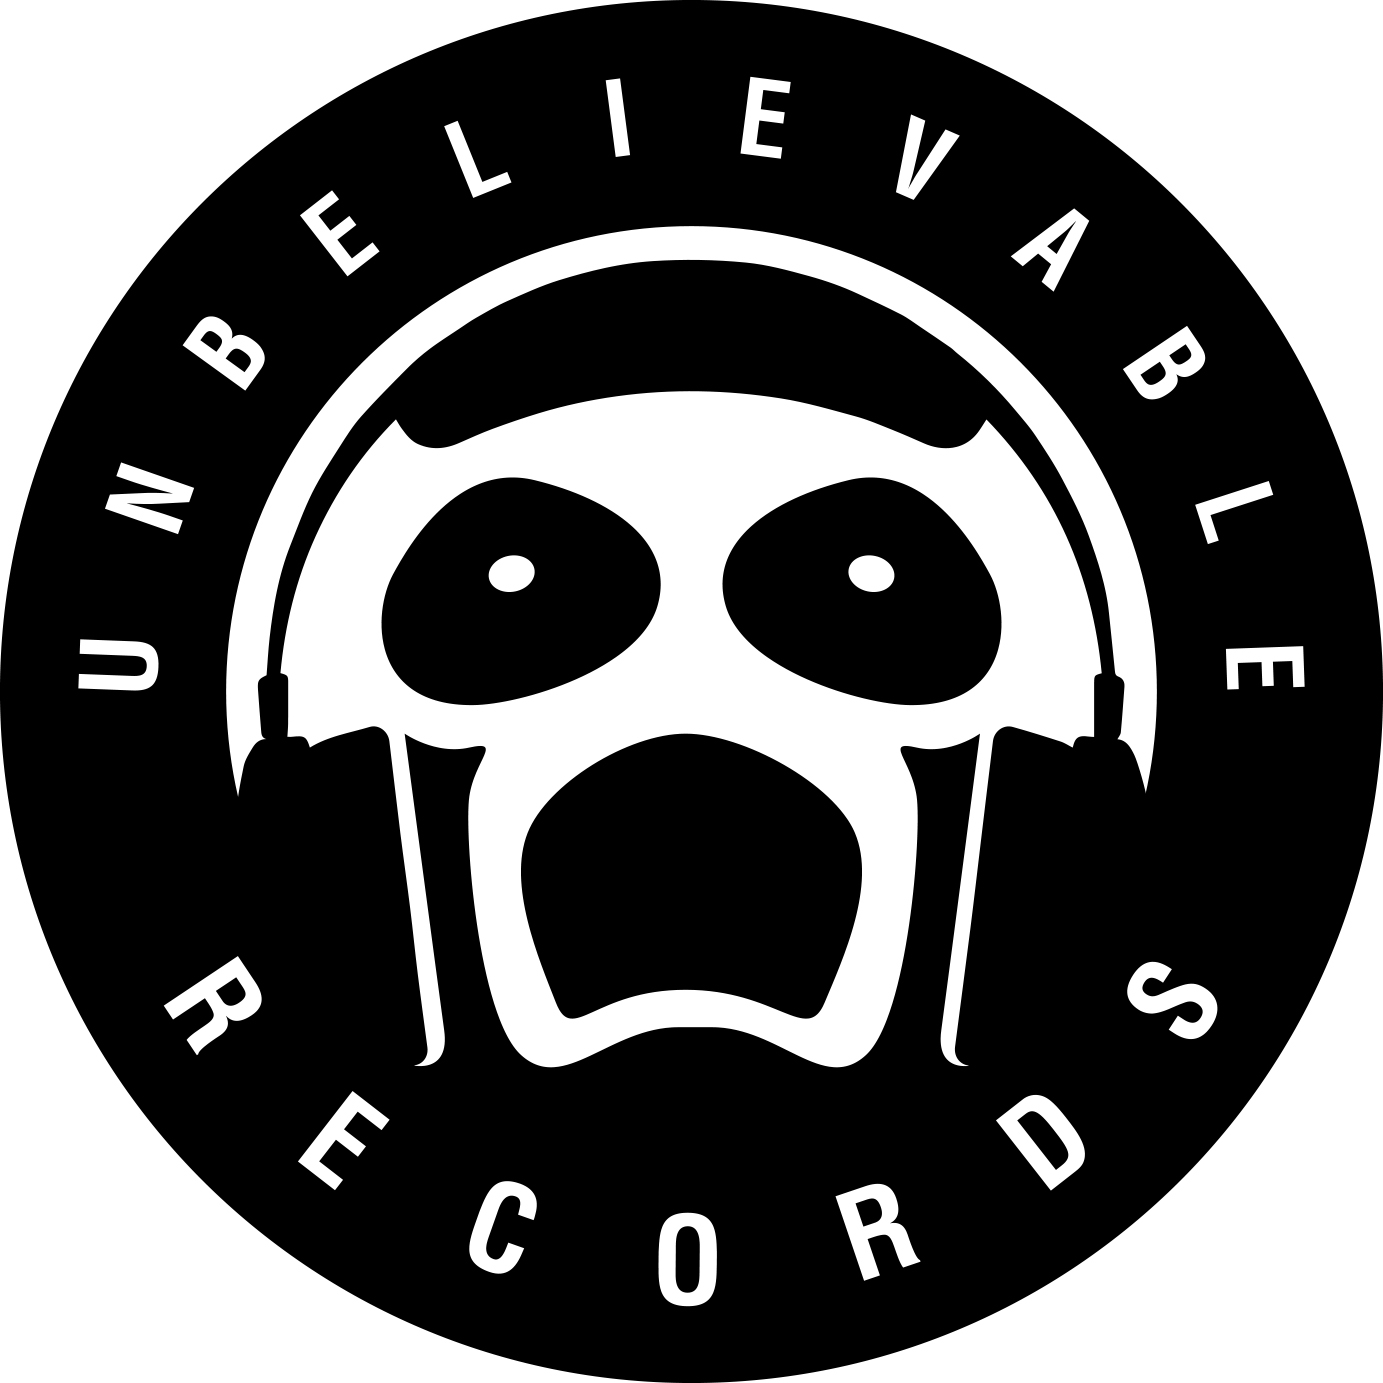 Unbelievable Music Records